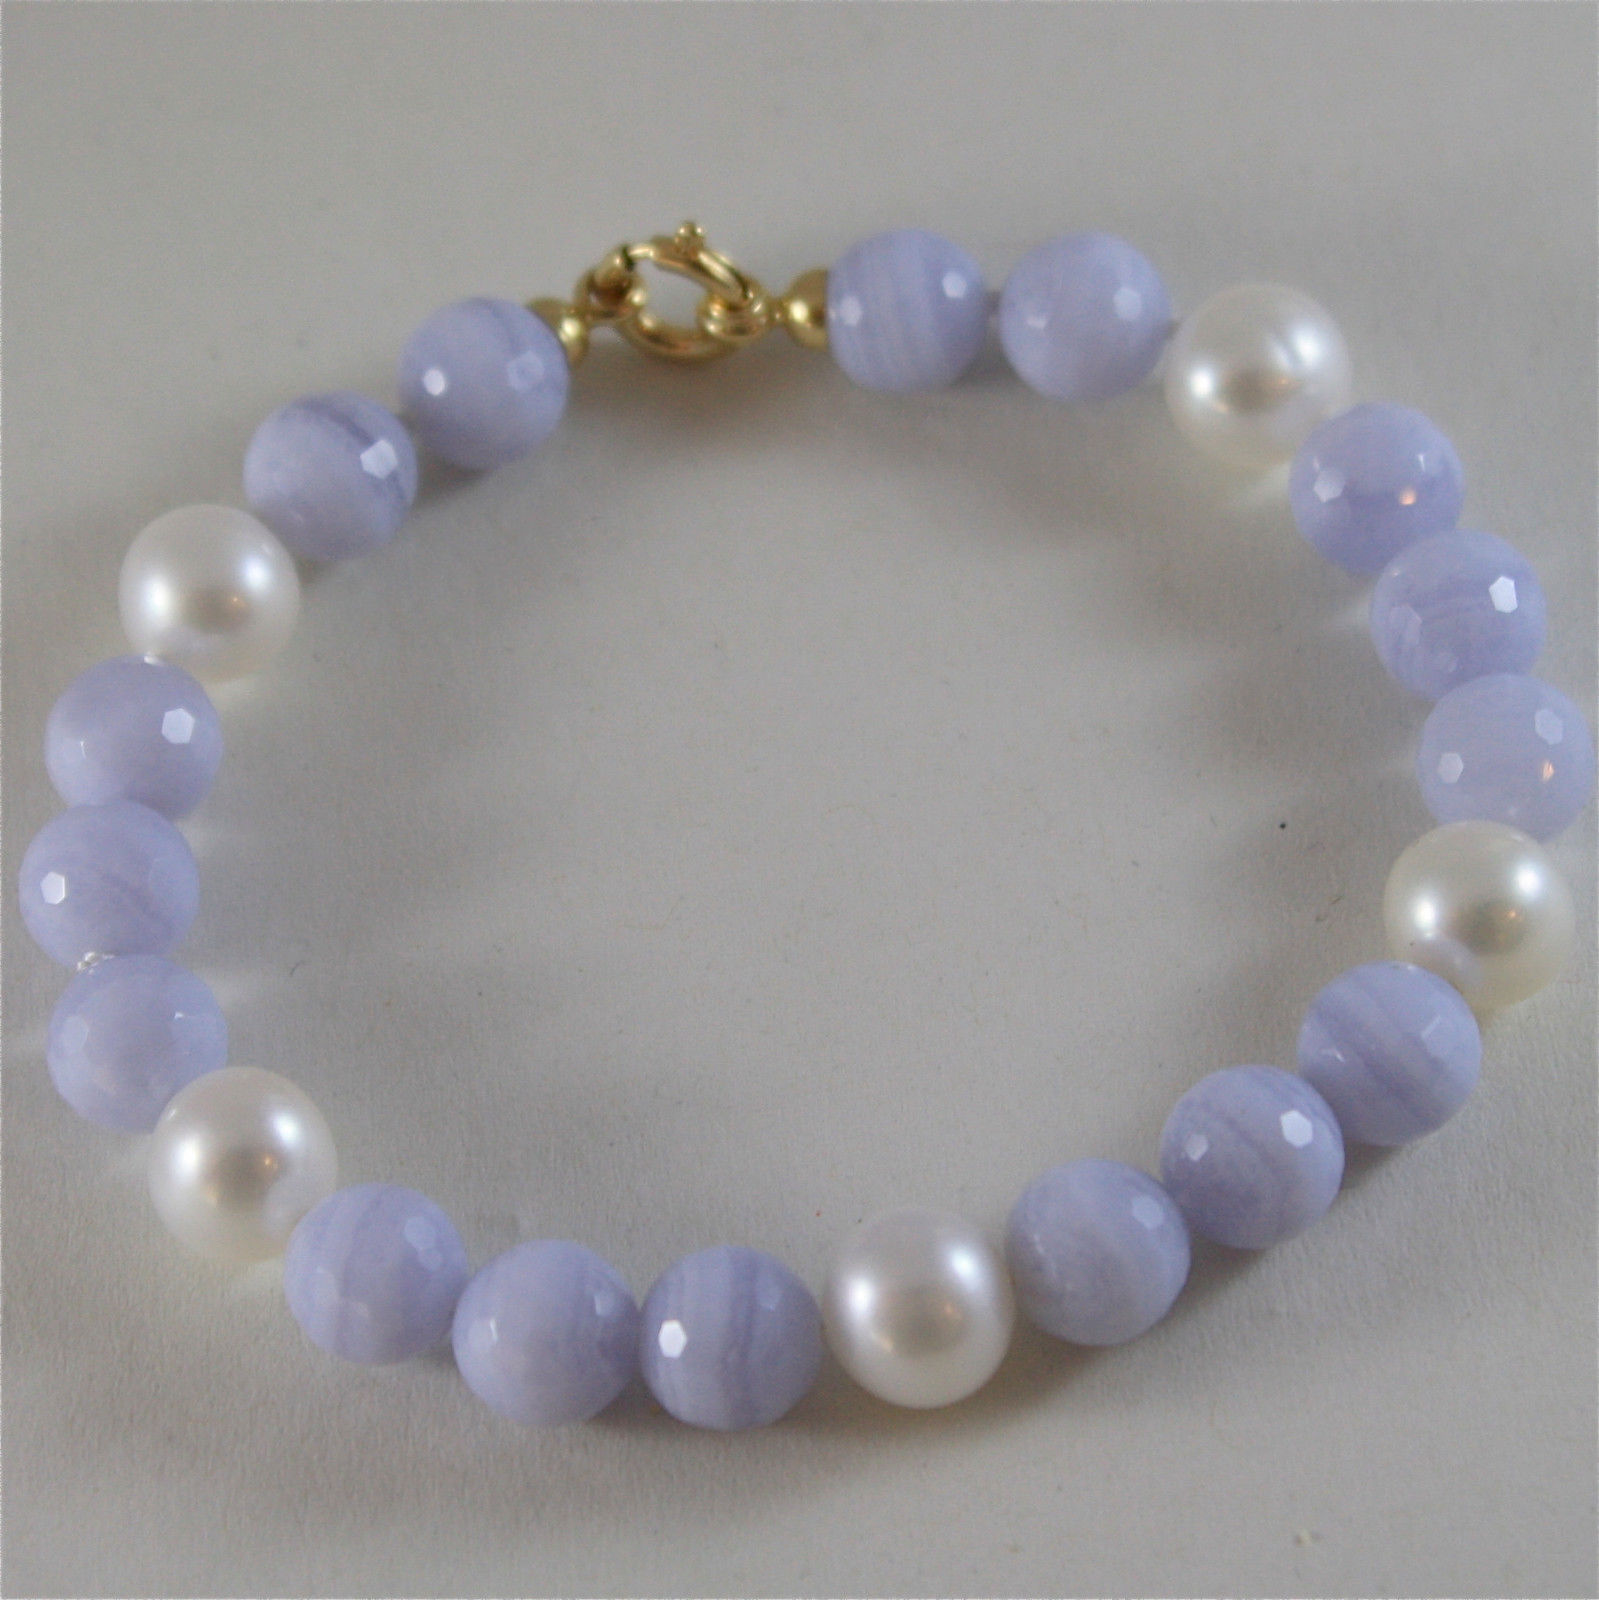 18K YELLOW GOLD BRACELET WITH STRAND PEARLS AND CHALCEDONY 7.48 IN MADE IN ITALY